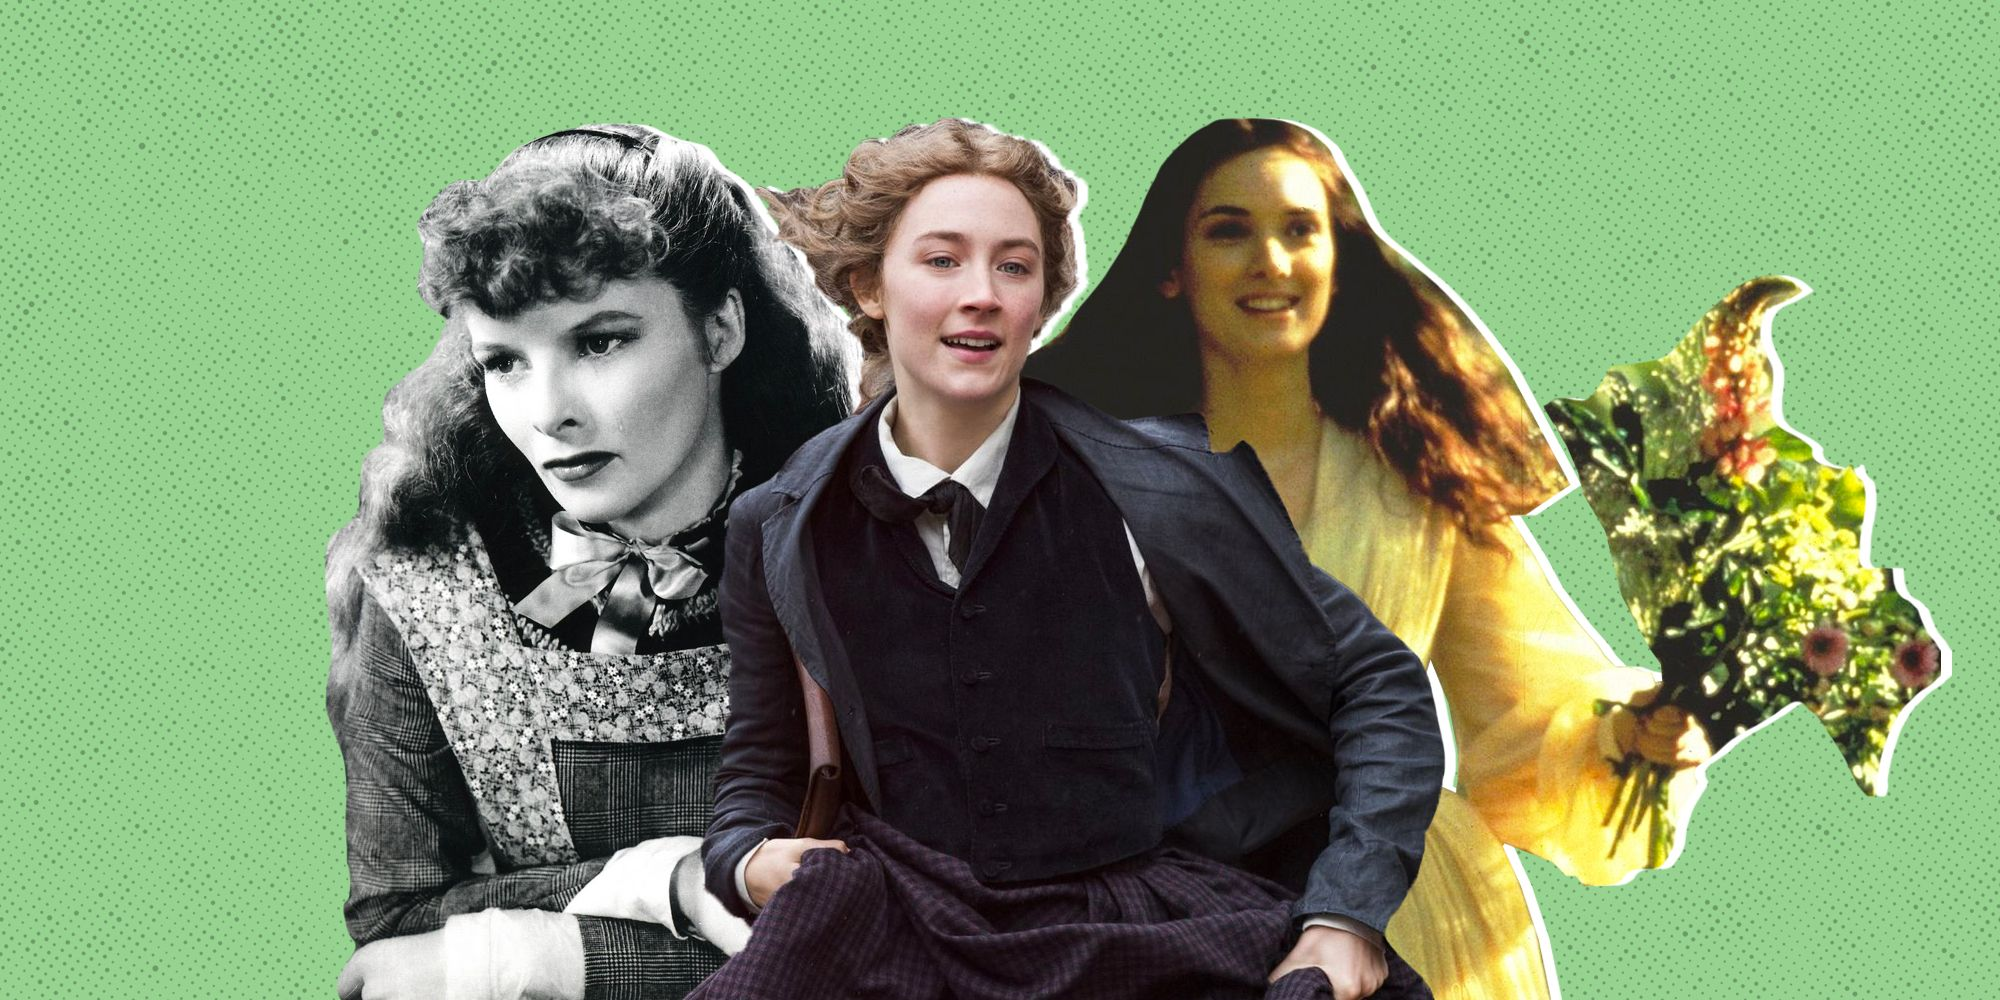 Little Women A List of Every TV and Movie Adaptation so Far